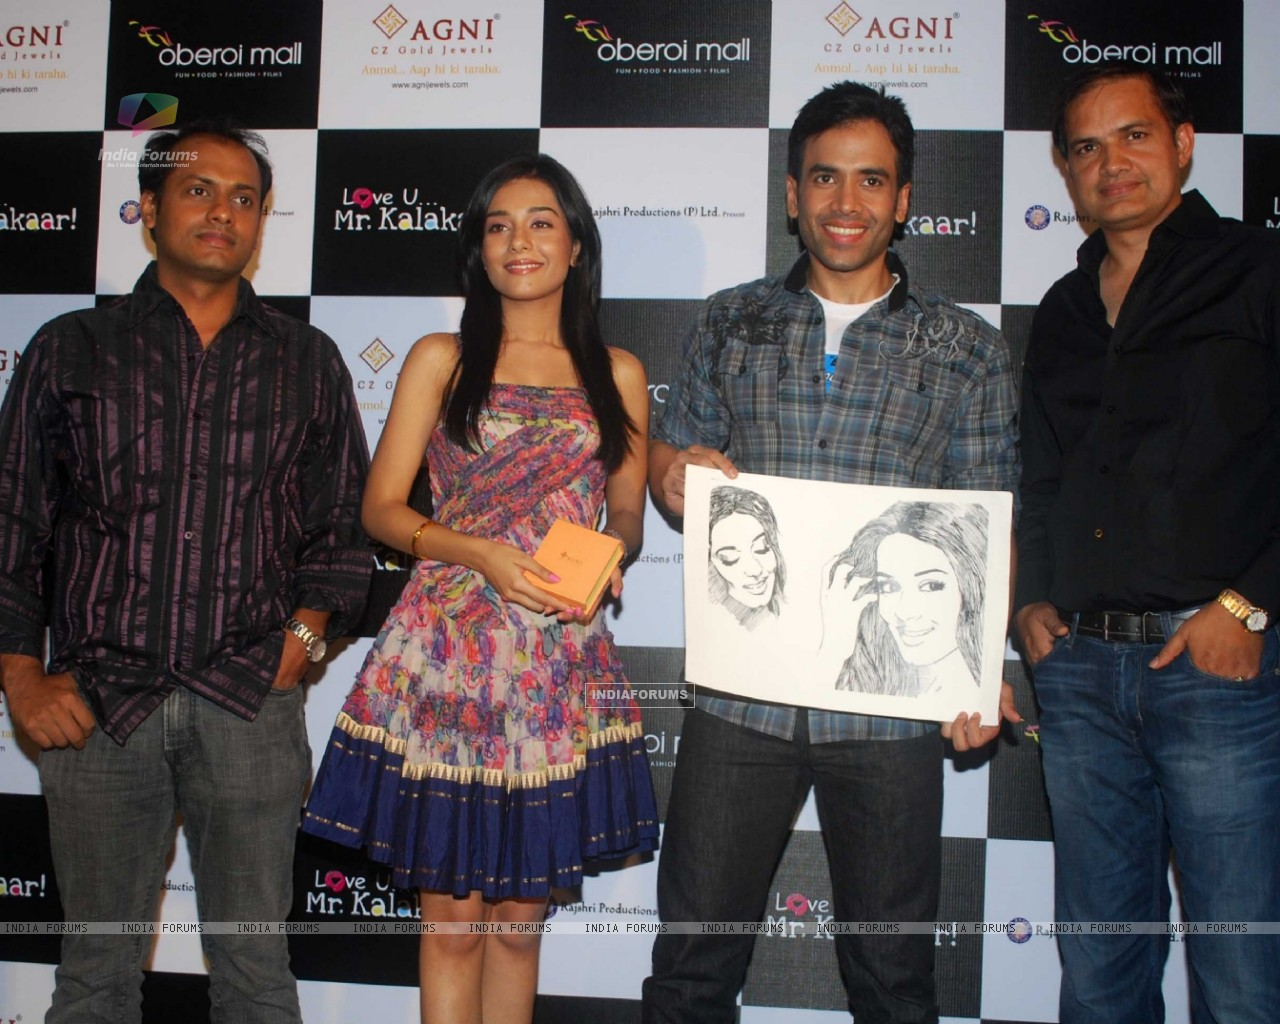 Tusshar Kapoor and Amrita Rao at a promotional event for film Love U... Mr. Kalakaar! at Oberoi Mall (133393) size:1280x1024